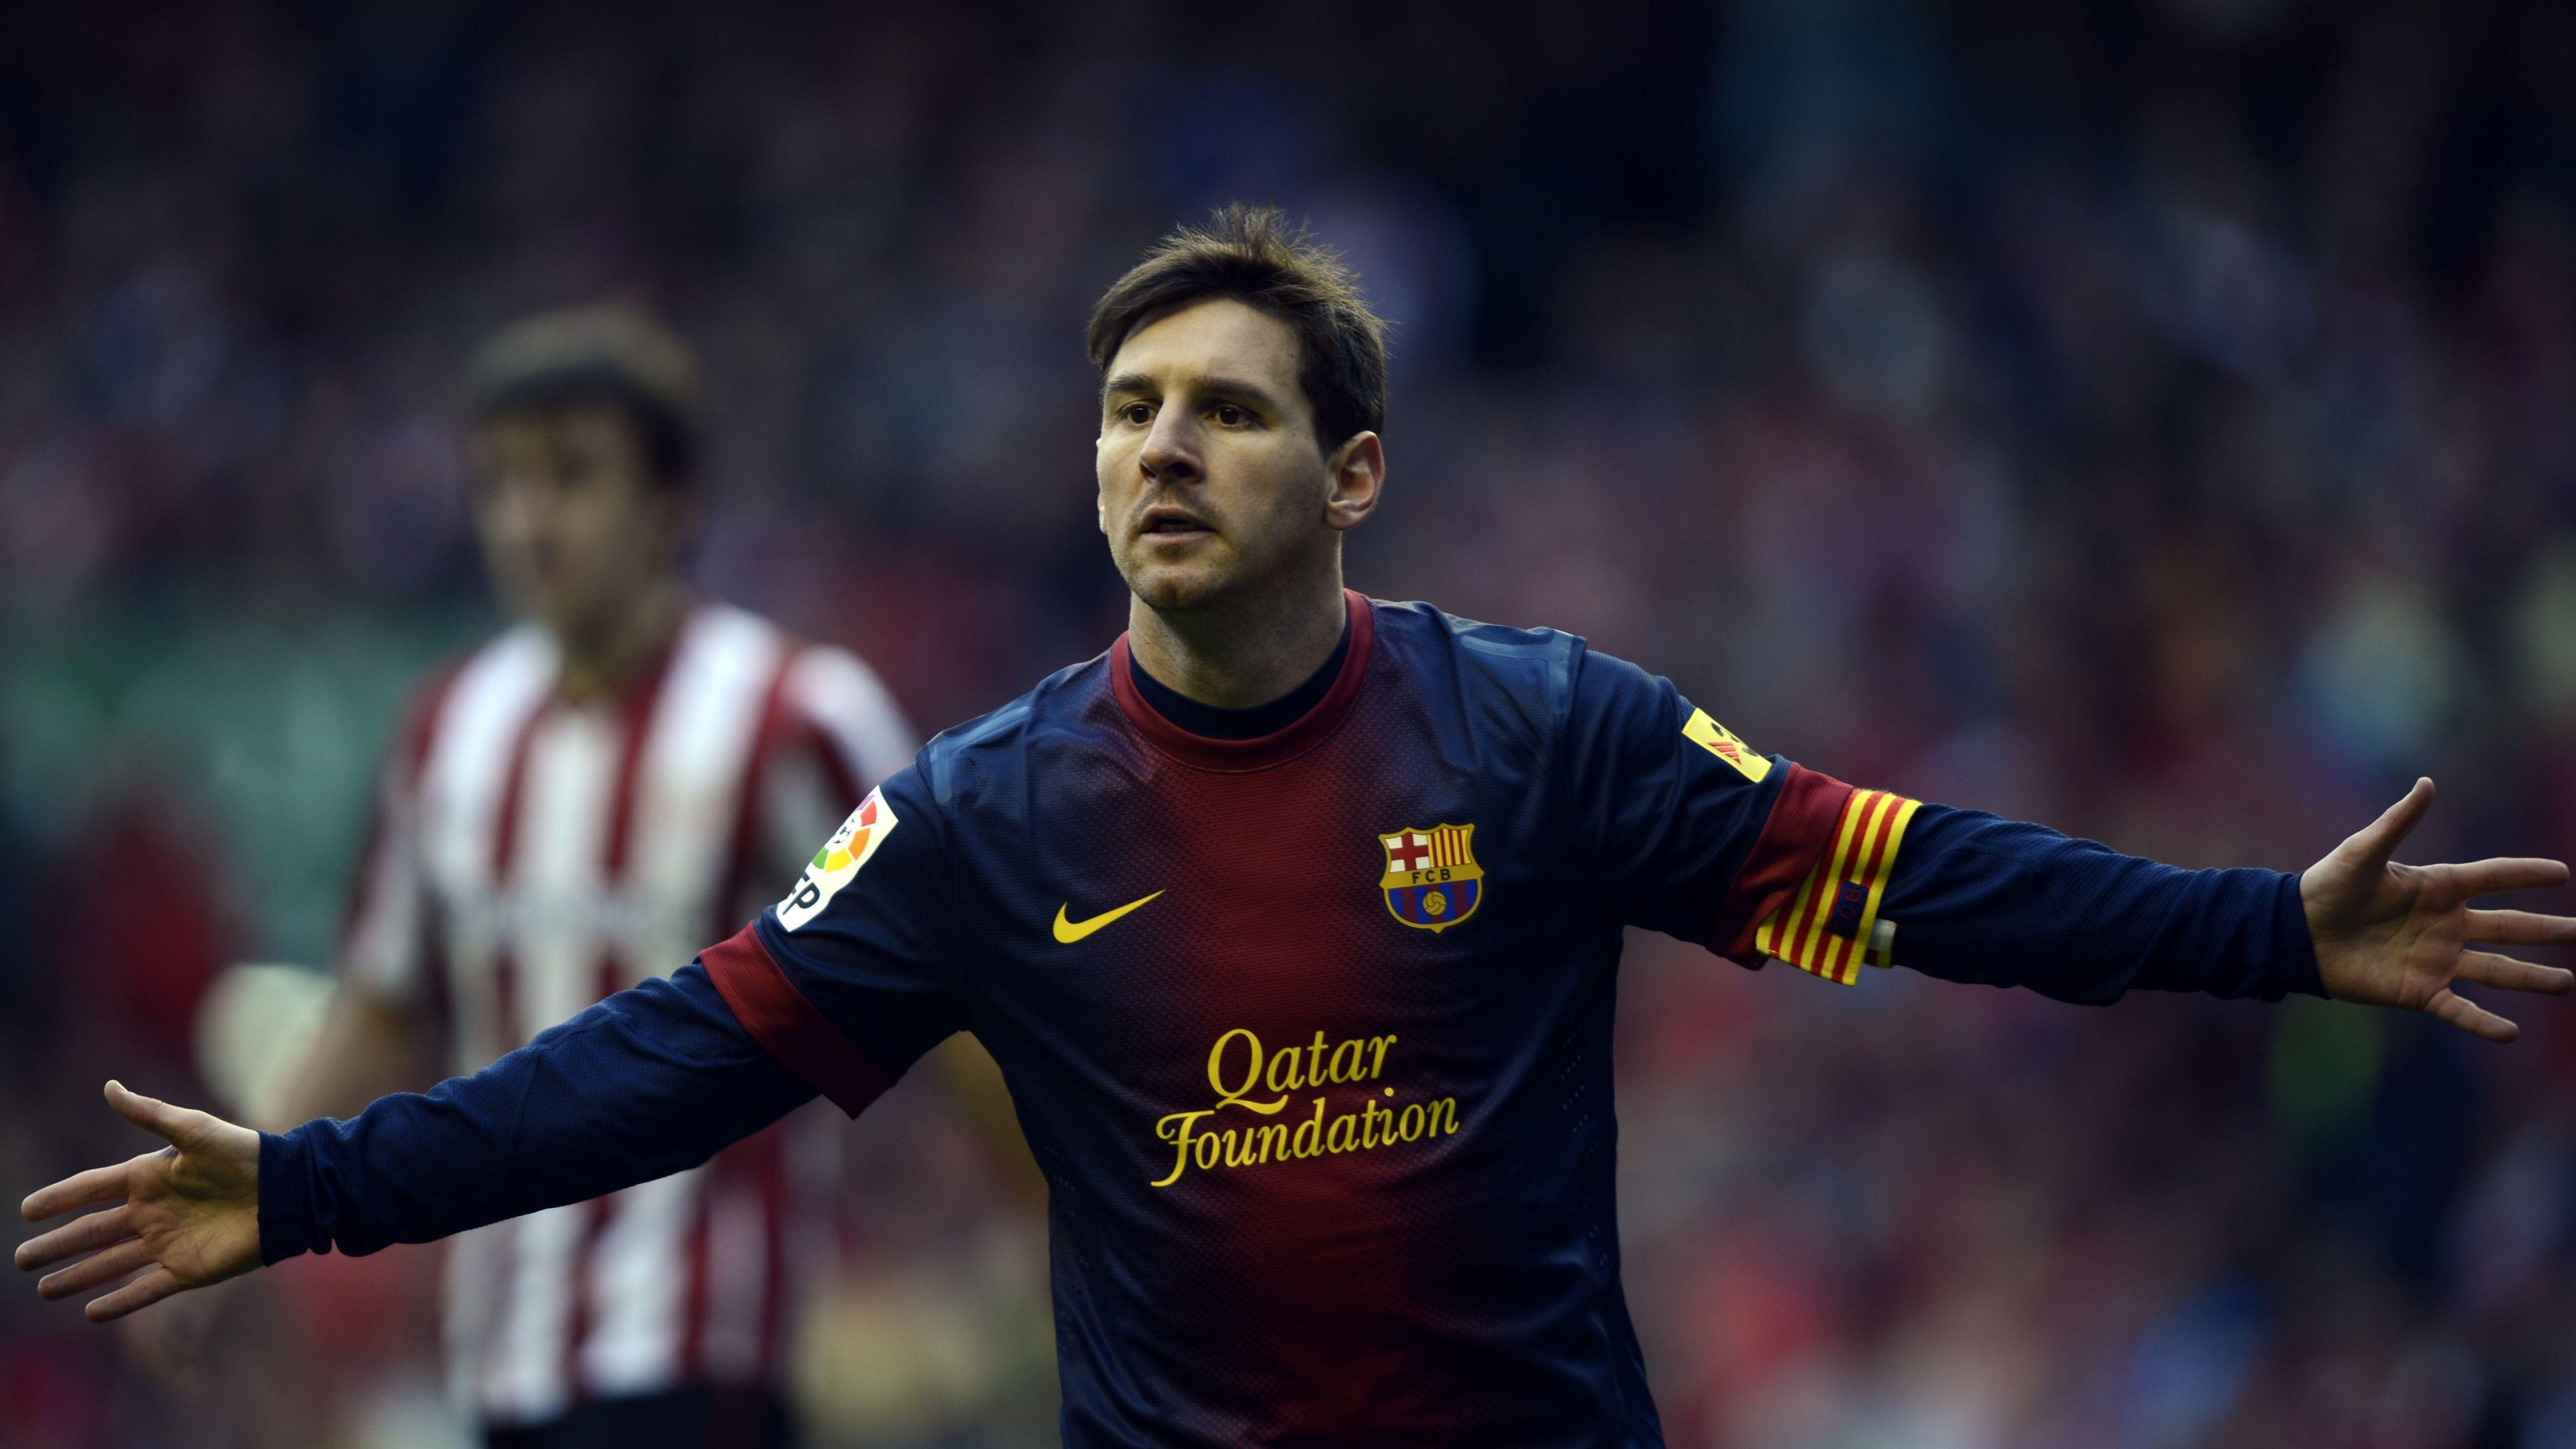 Lionel Messi 4k Ultra HD Wallpapers and Backgrounds Image